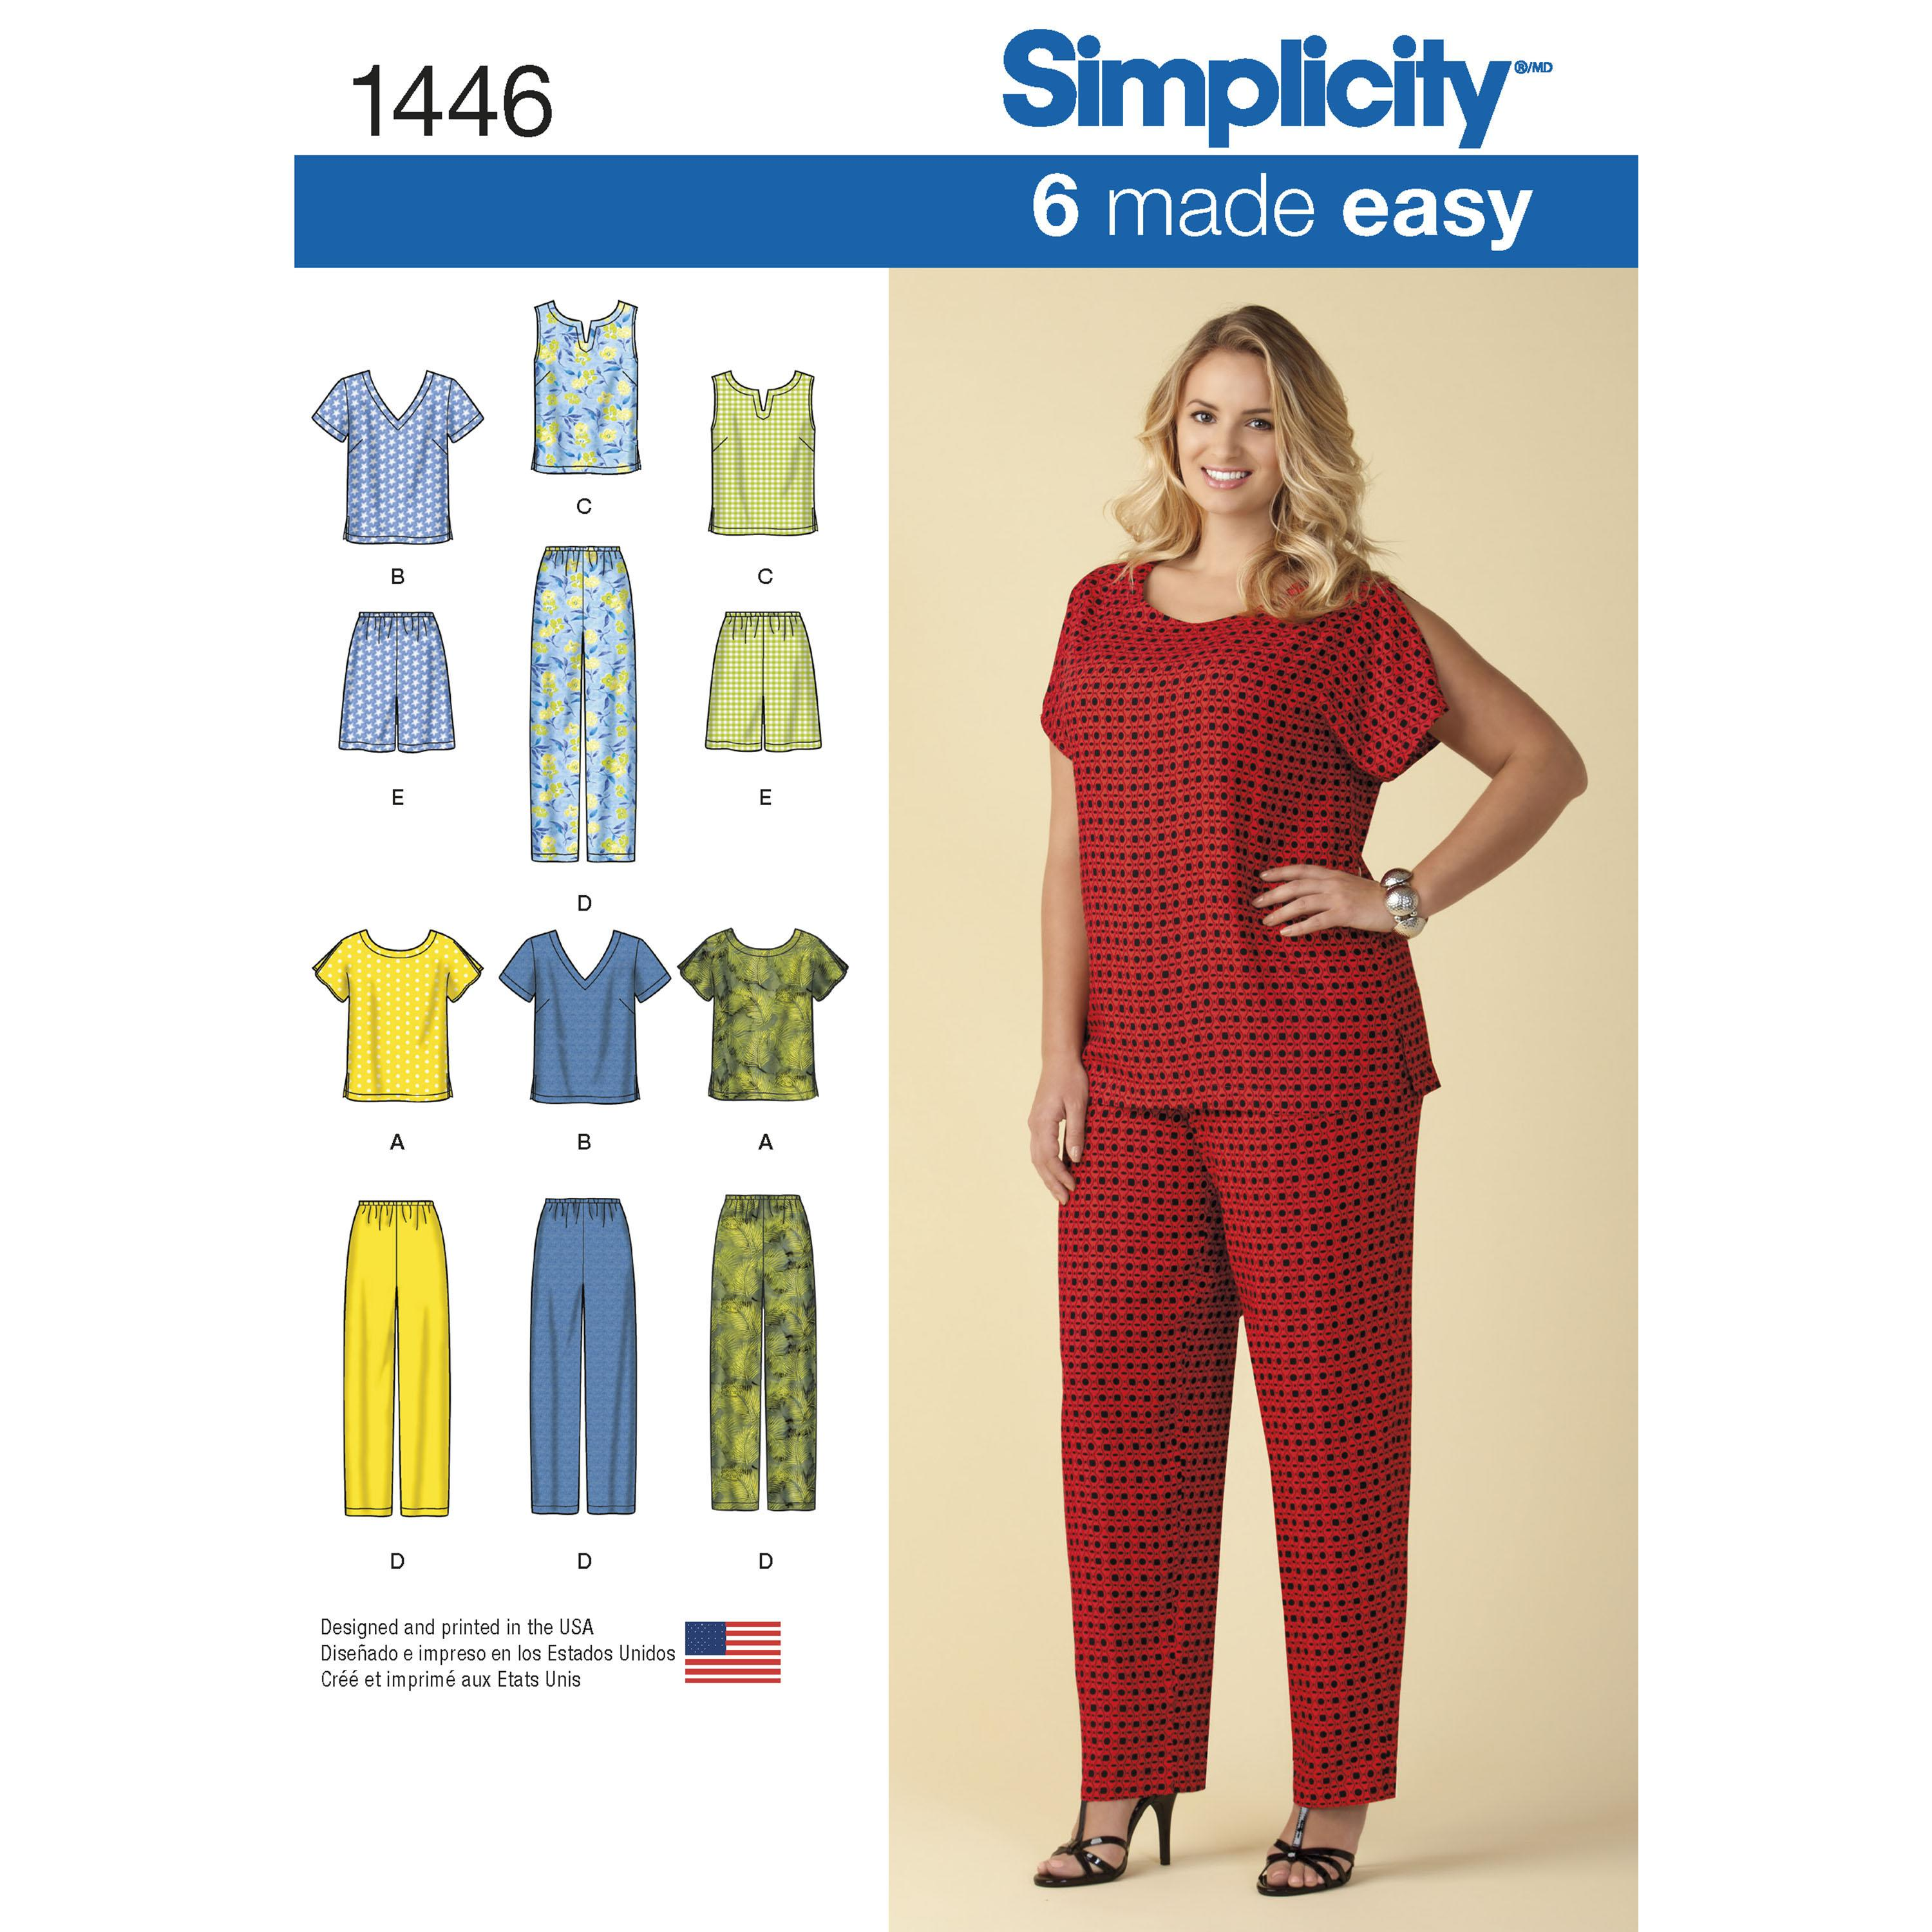 Simplicity S1446 Six Made Easy Pull on Tops and Trousers or Shorts for Plus Size